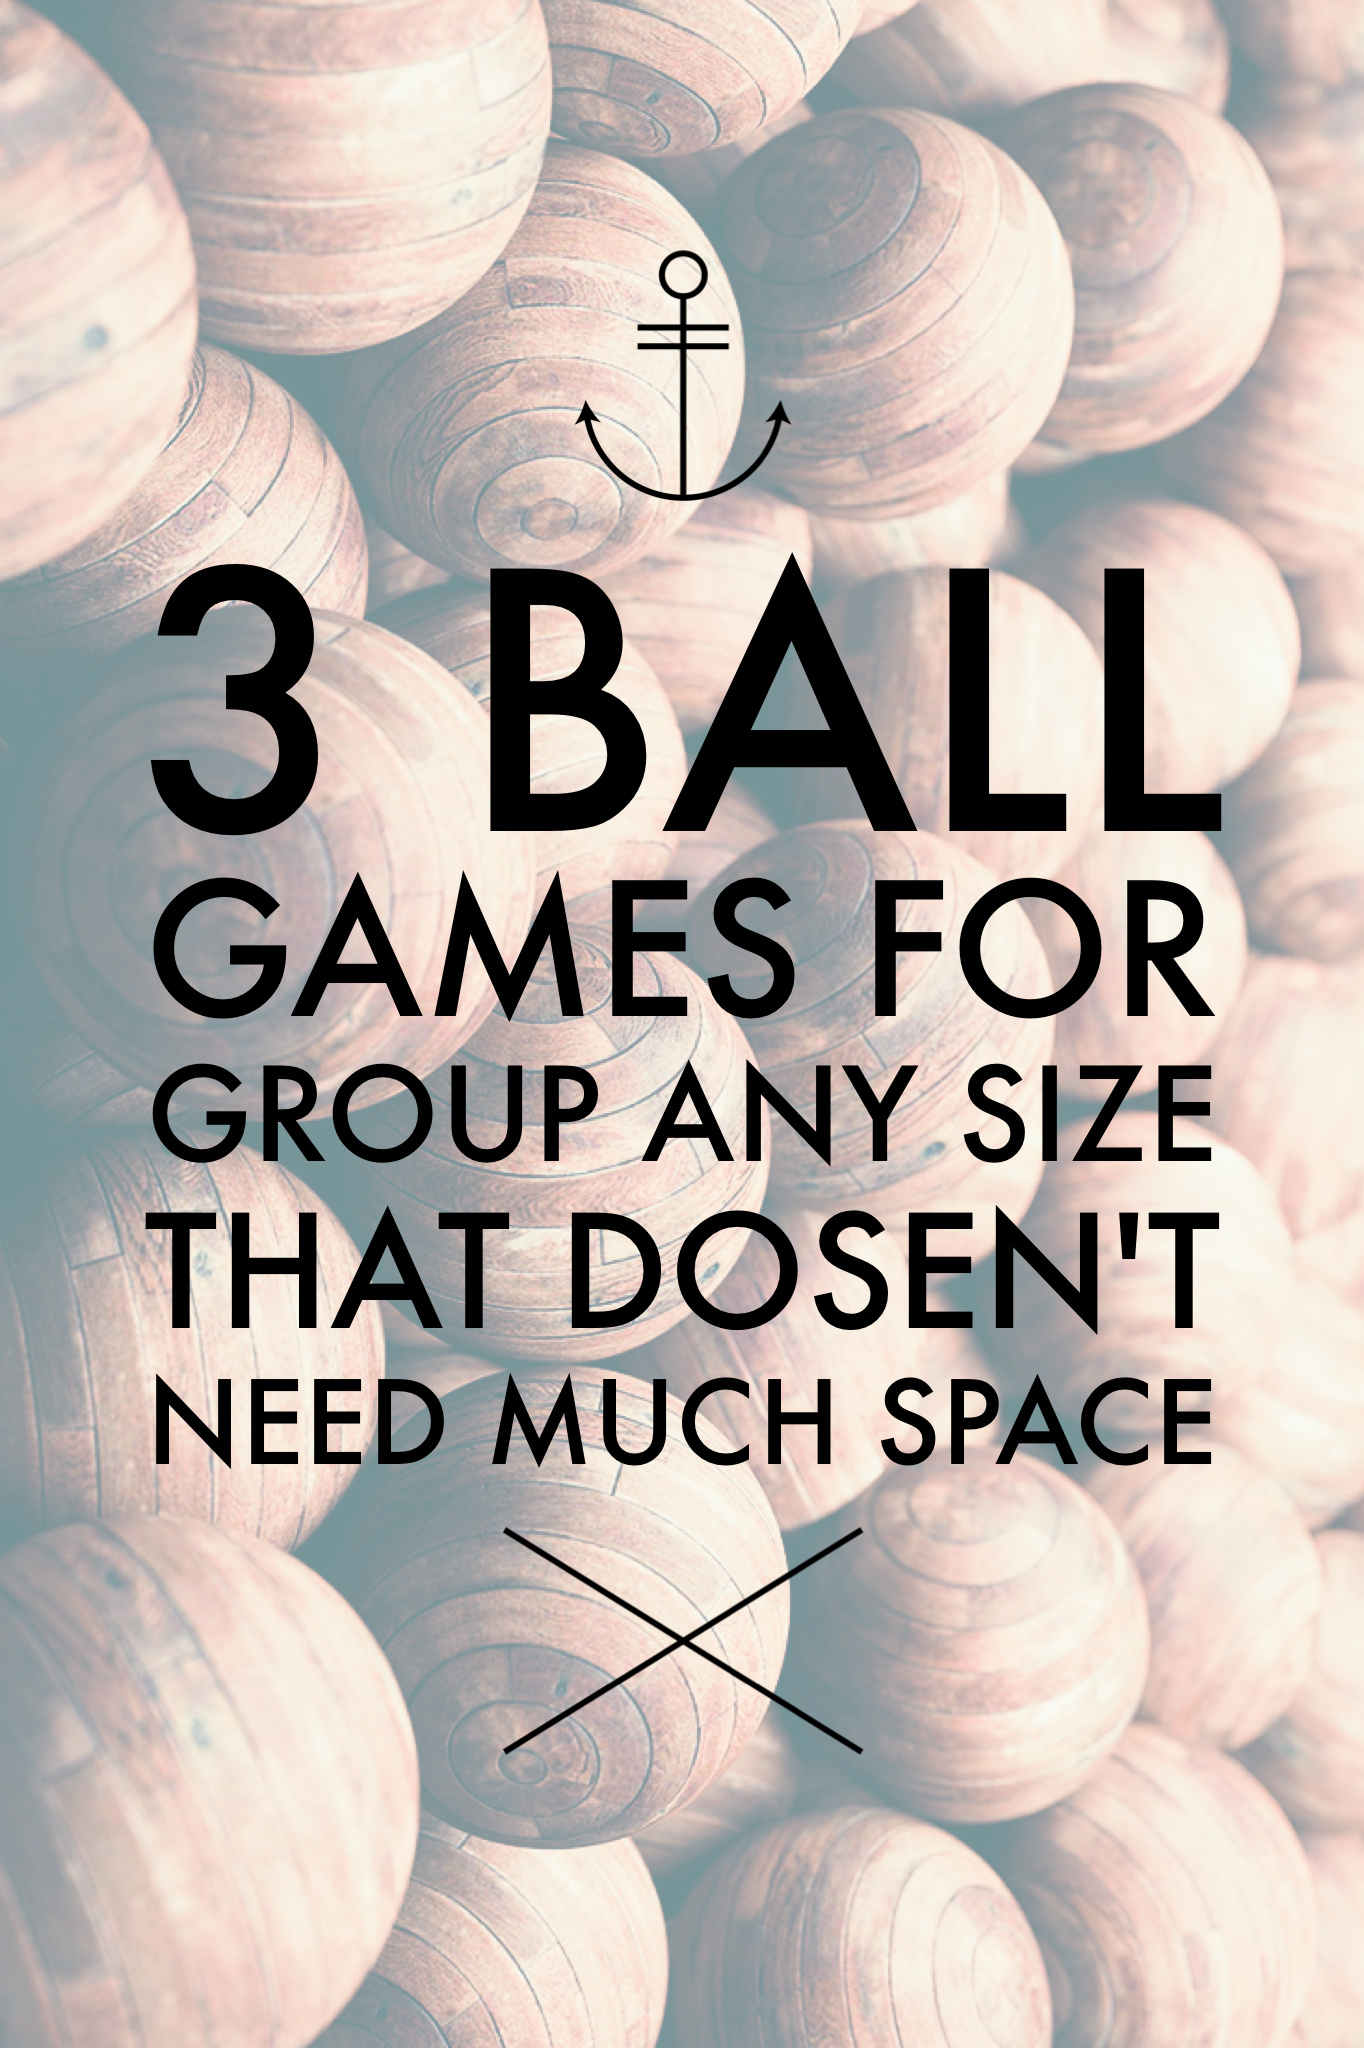 3 fun games involving a ball that you can play indoor or outdoor